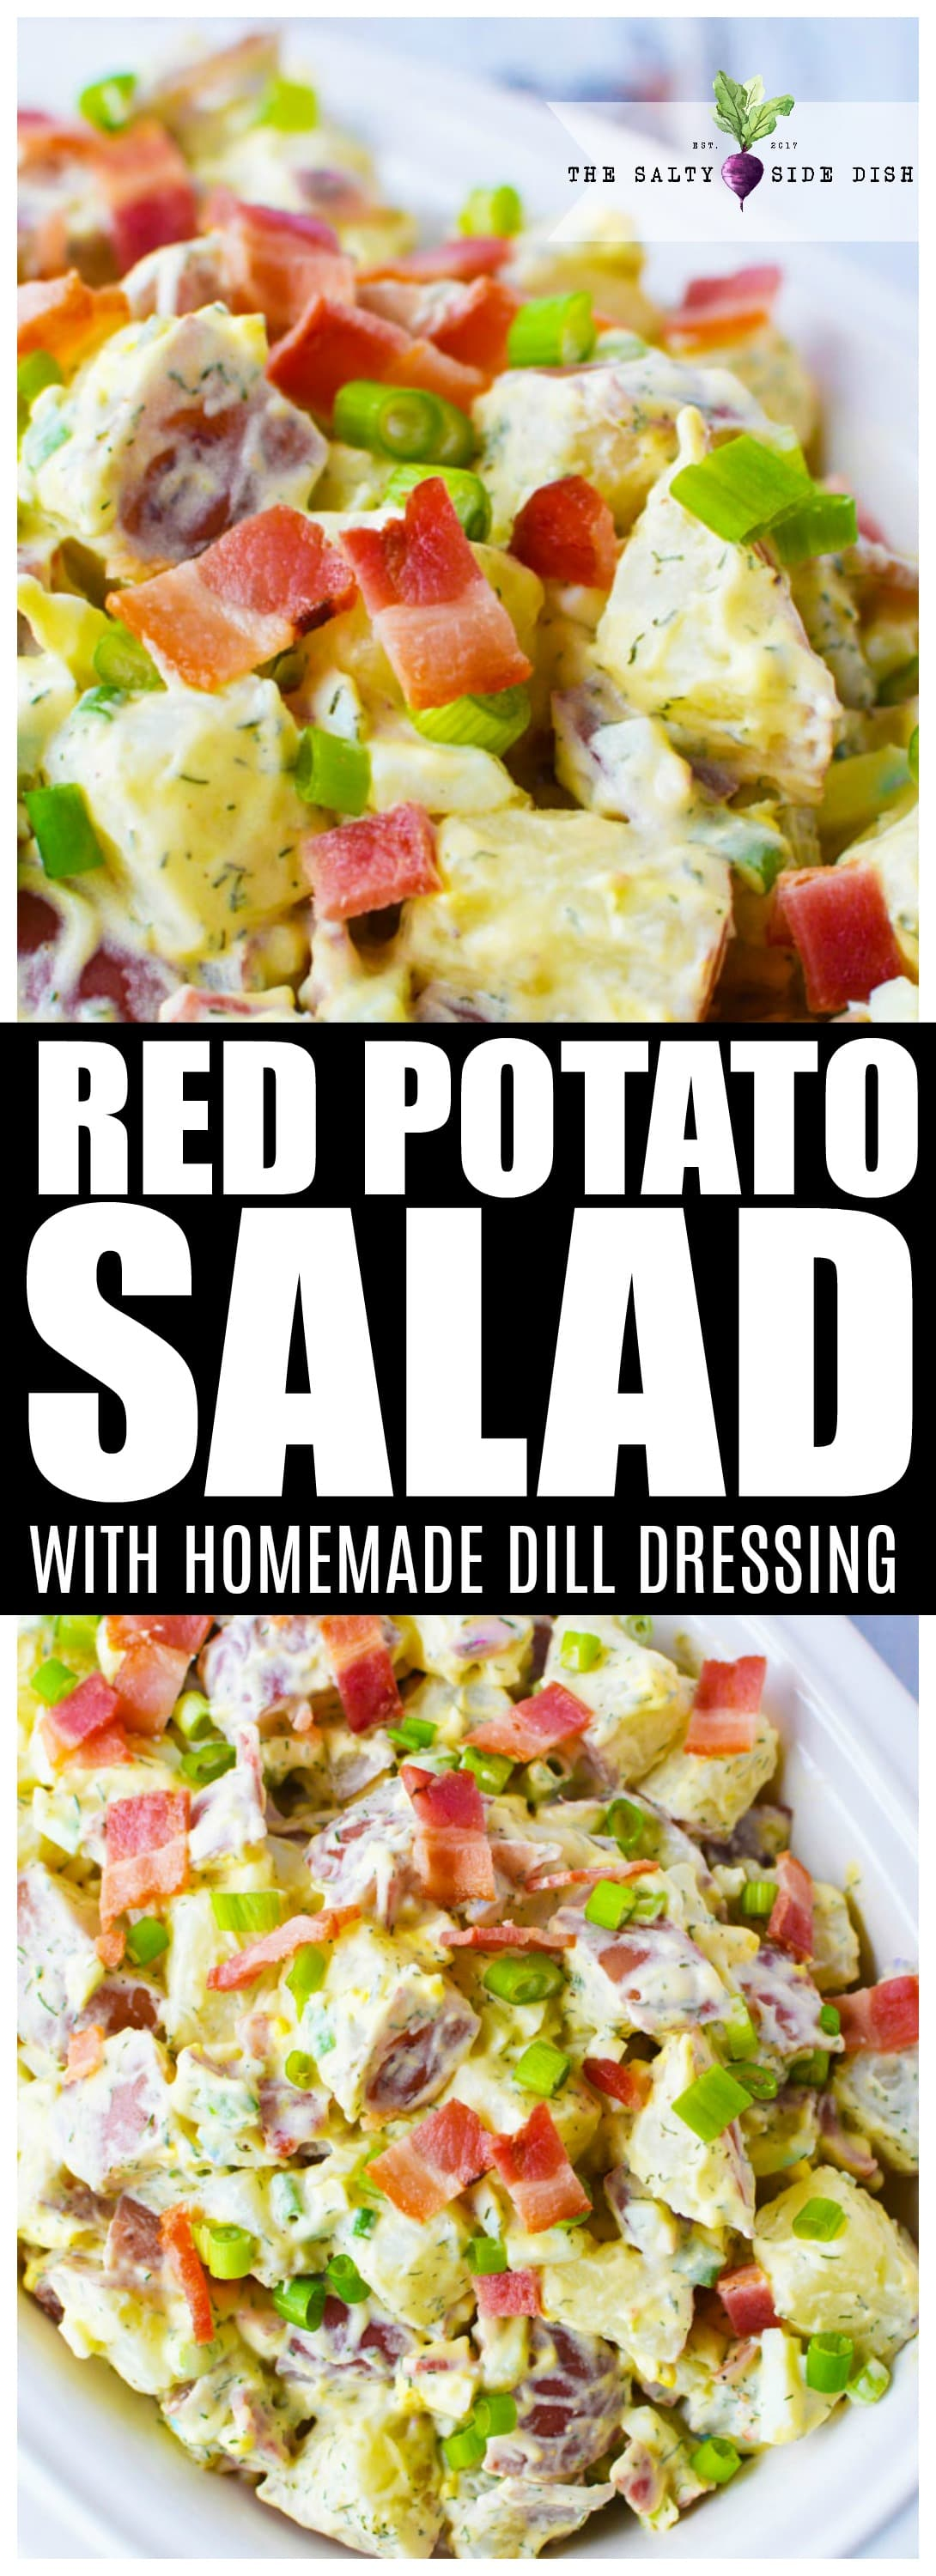 Red Potato Salad Recipe with Homemade Dill Dressing and Bacon Pieces | #sidedish #potatoes #homemade #recipes #foodie #thanksgiving #holidaymeals